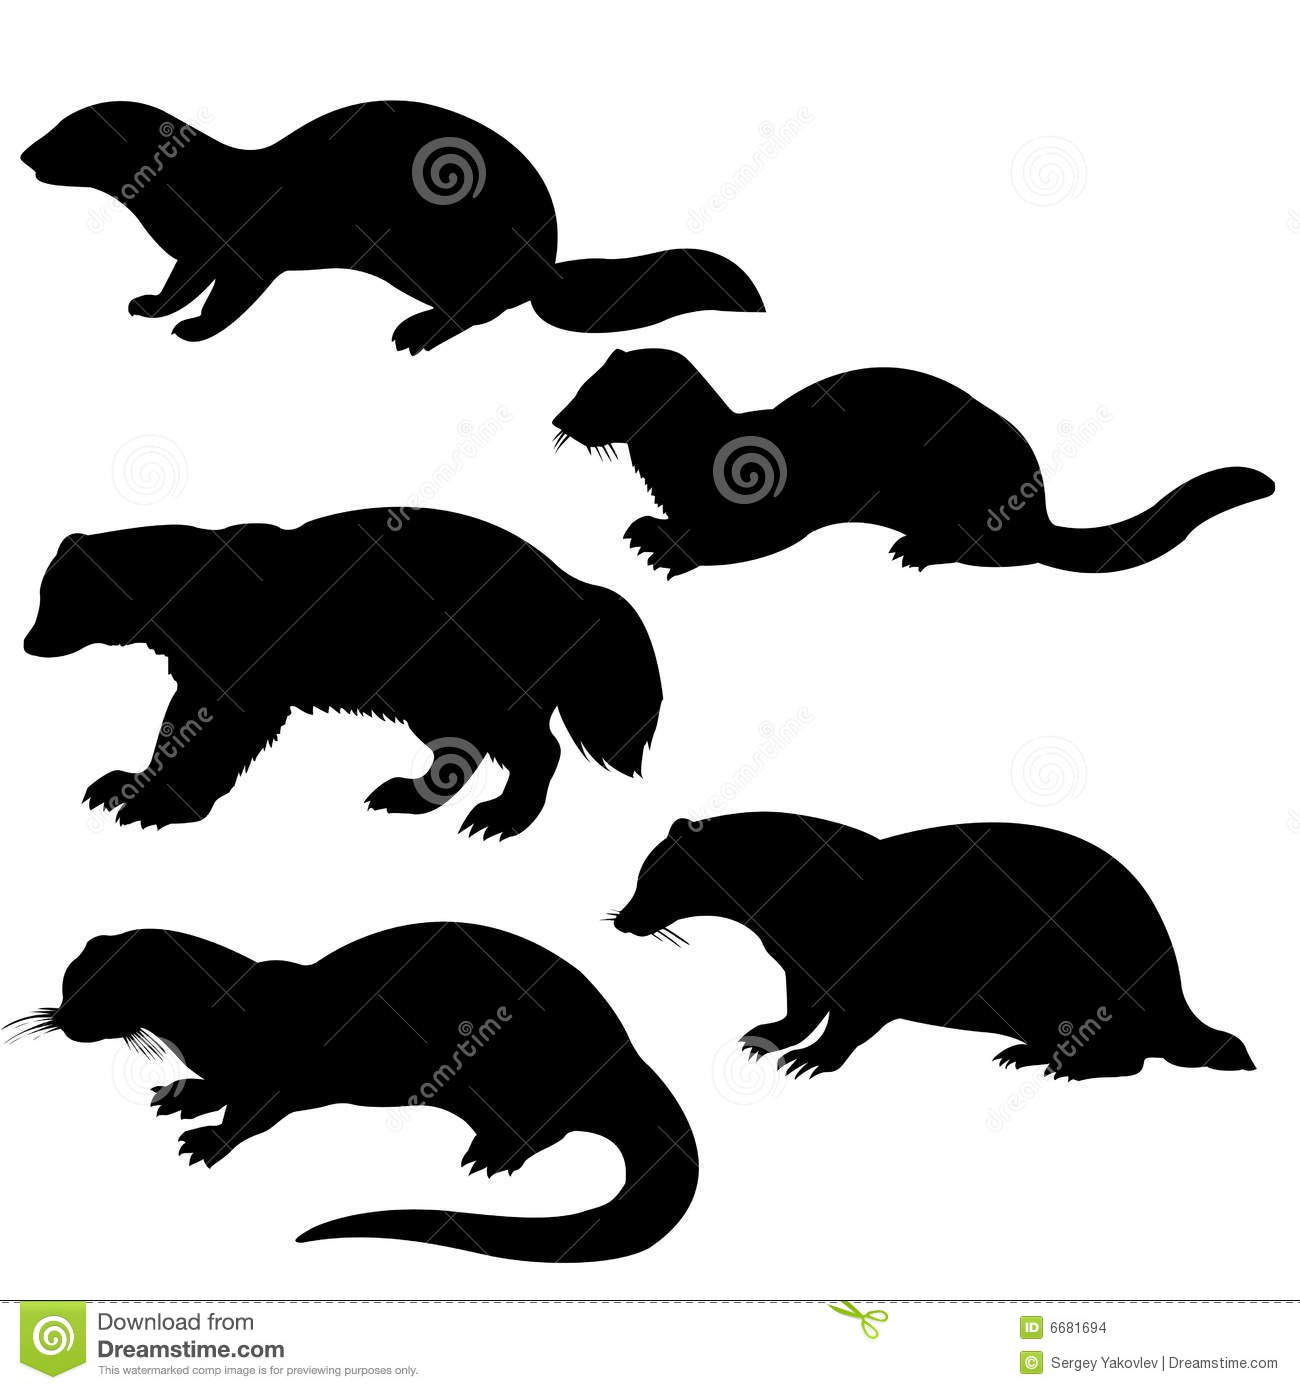 Silhouettes animales